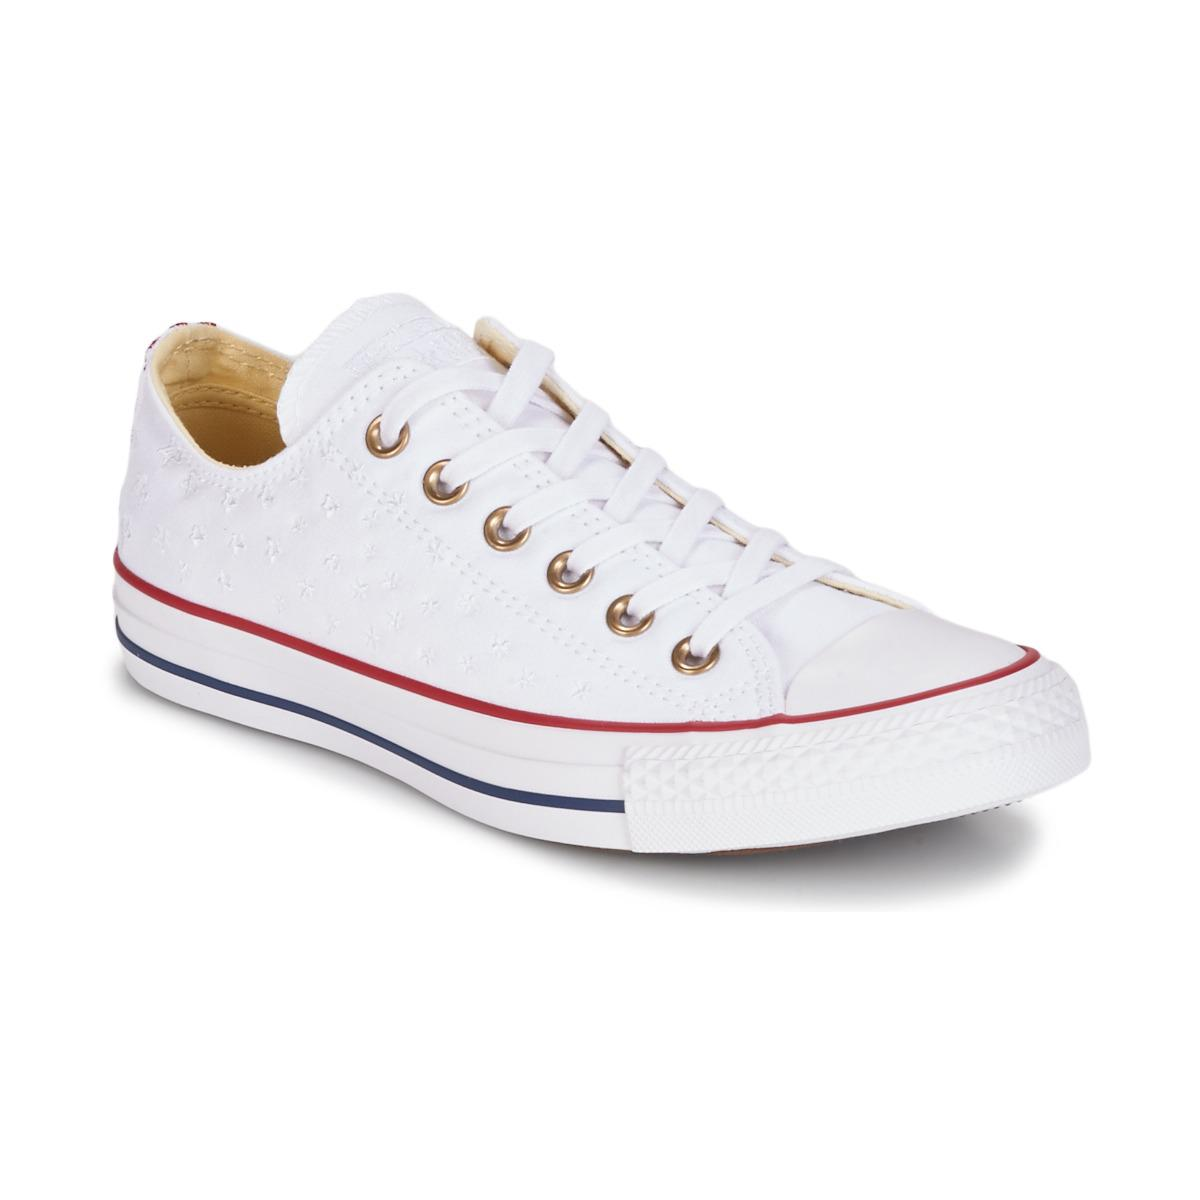 87711a253ee0 Converse Chuck Taylor All Star Americana Embroidery Ox Women s Shoes ...